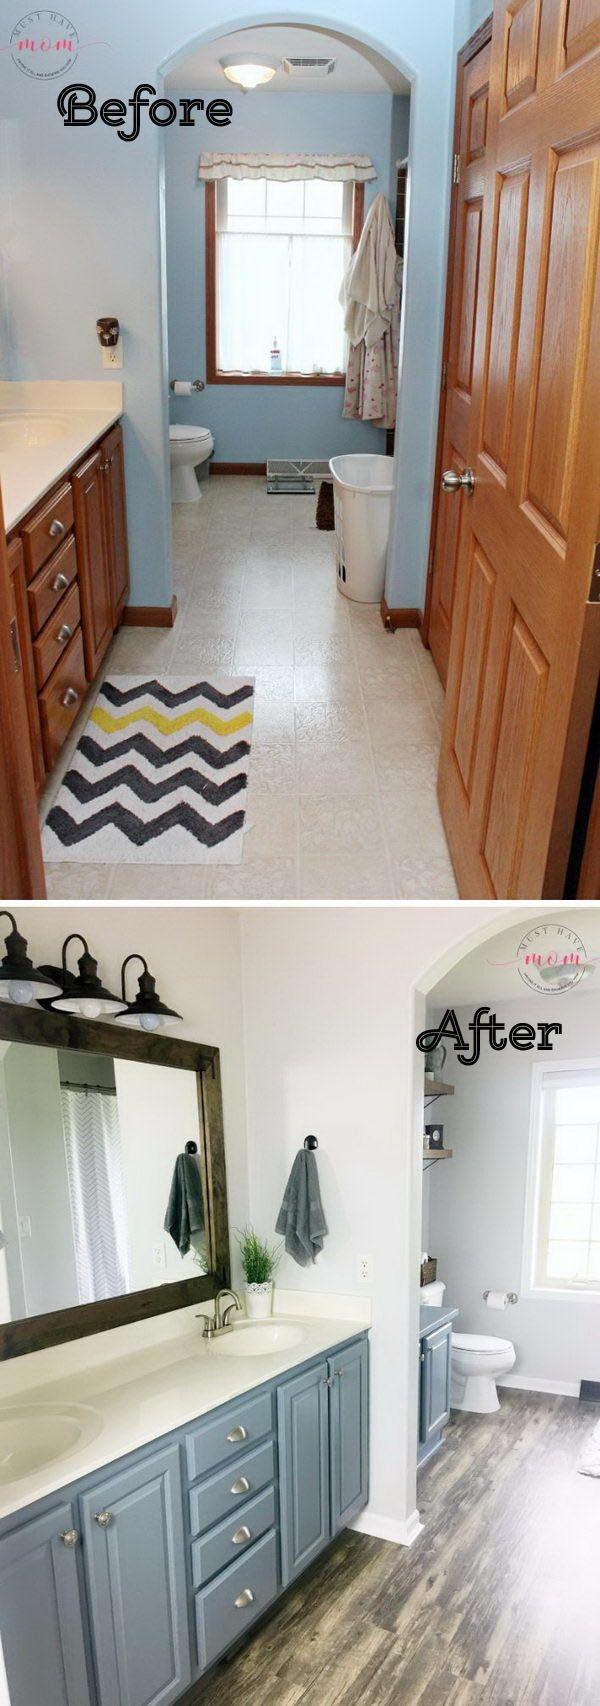 Diy farmhouse style fixer upper bathroom on a budget - Diy badezimmer ...